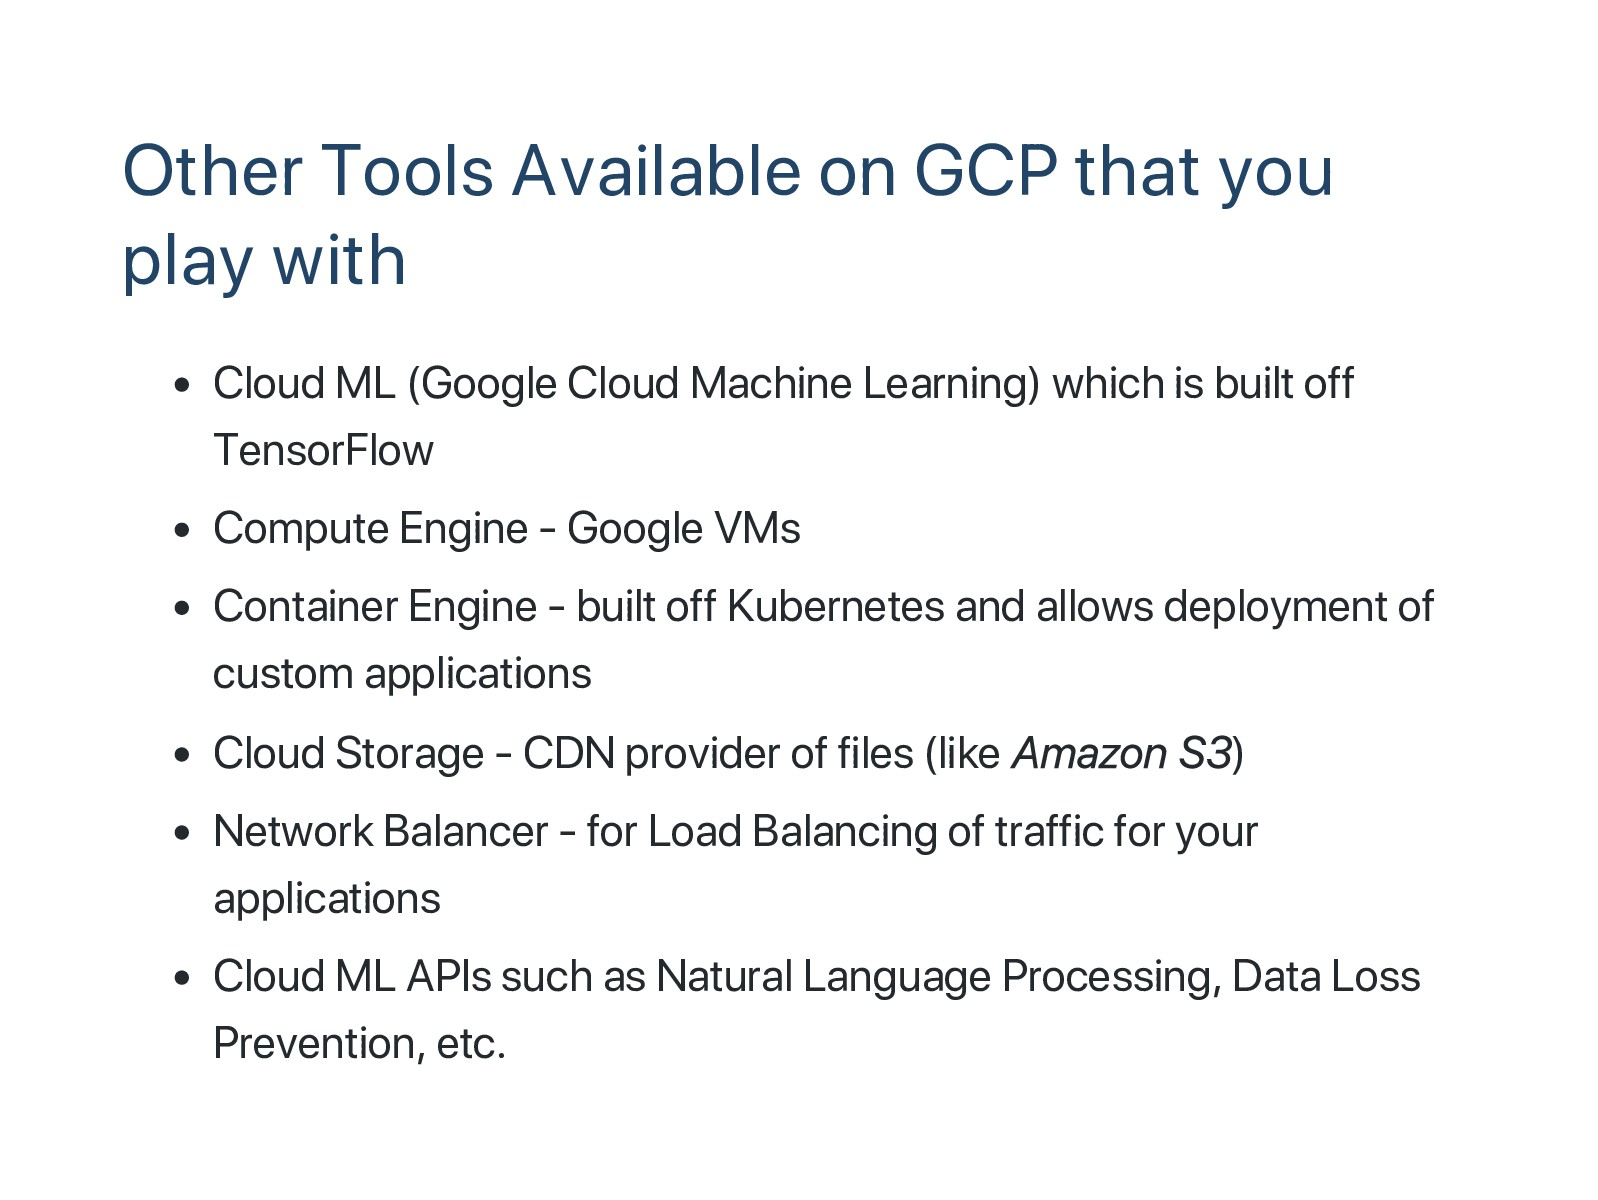 Other Tools Available on GCP that you play with...